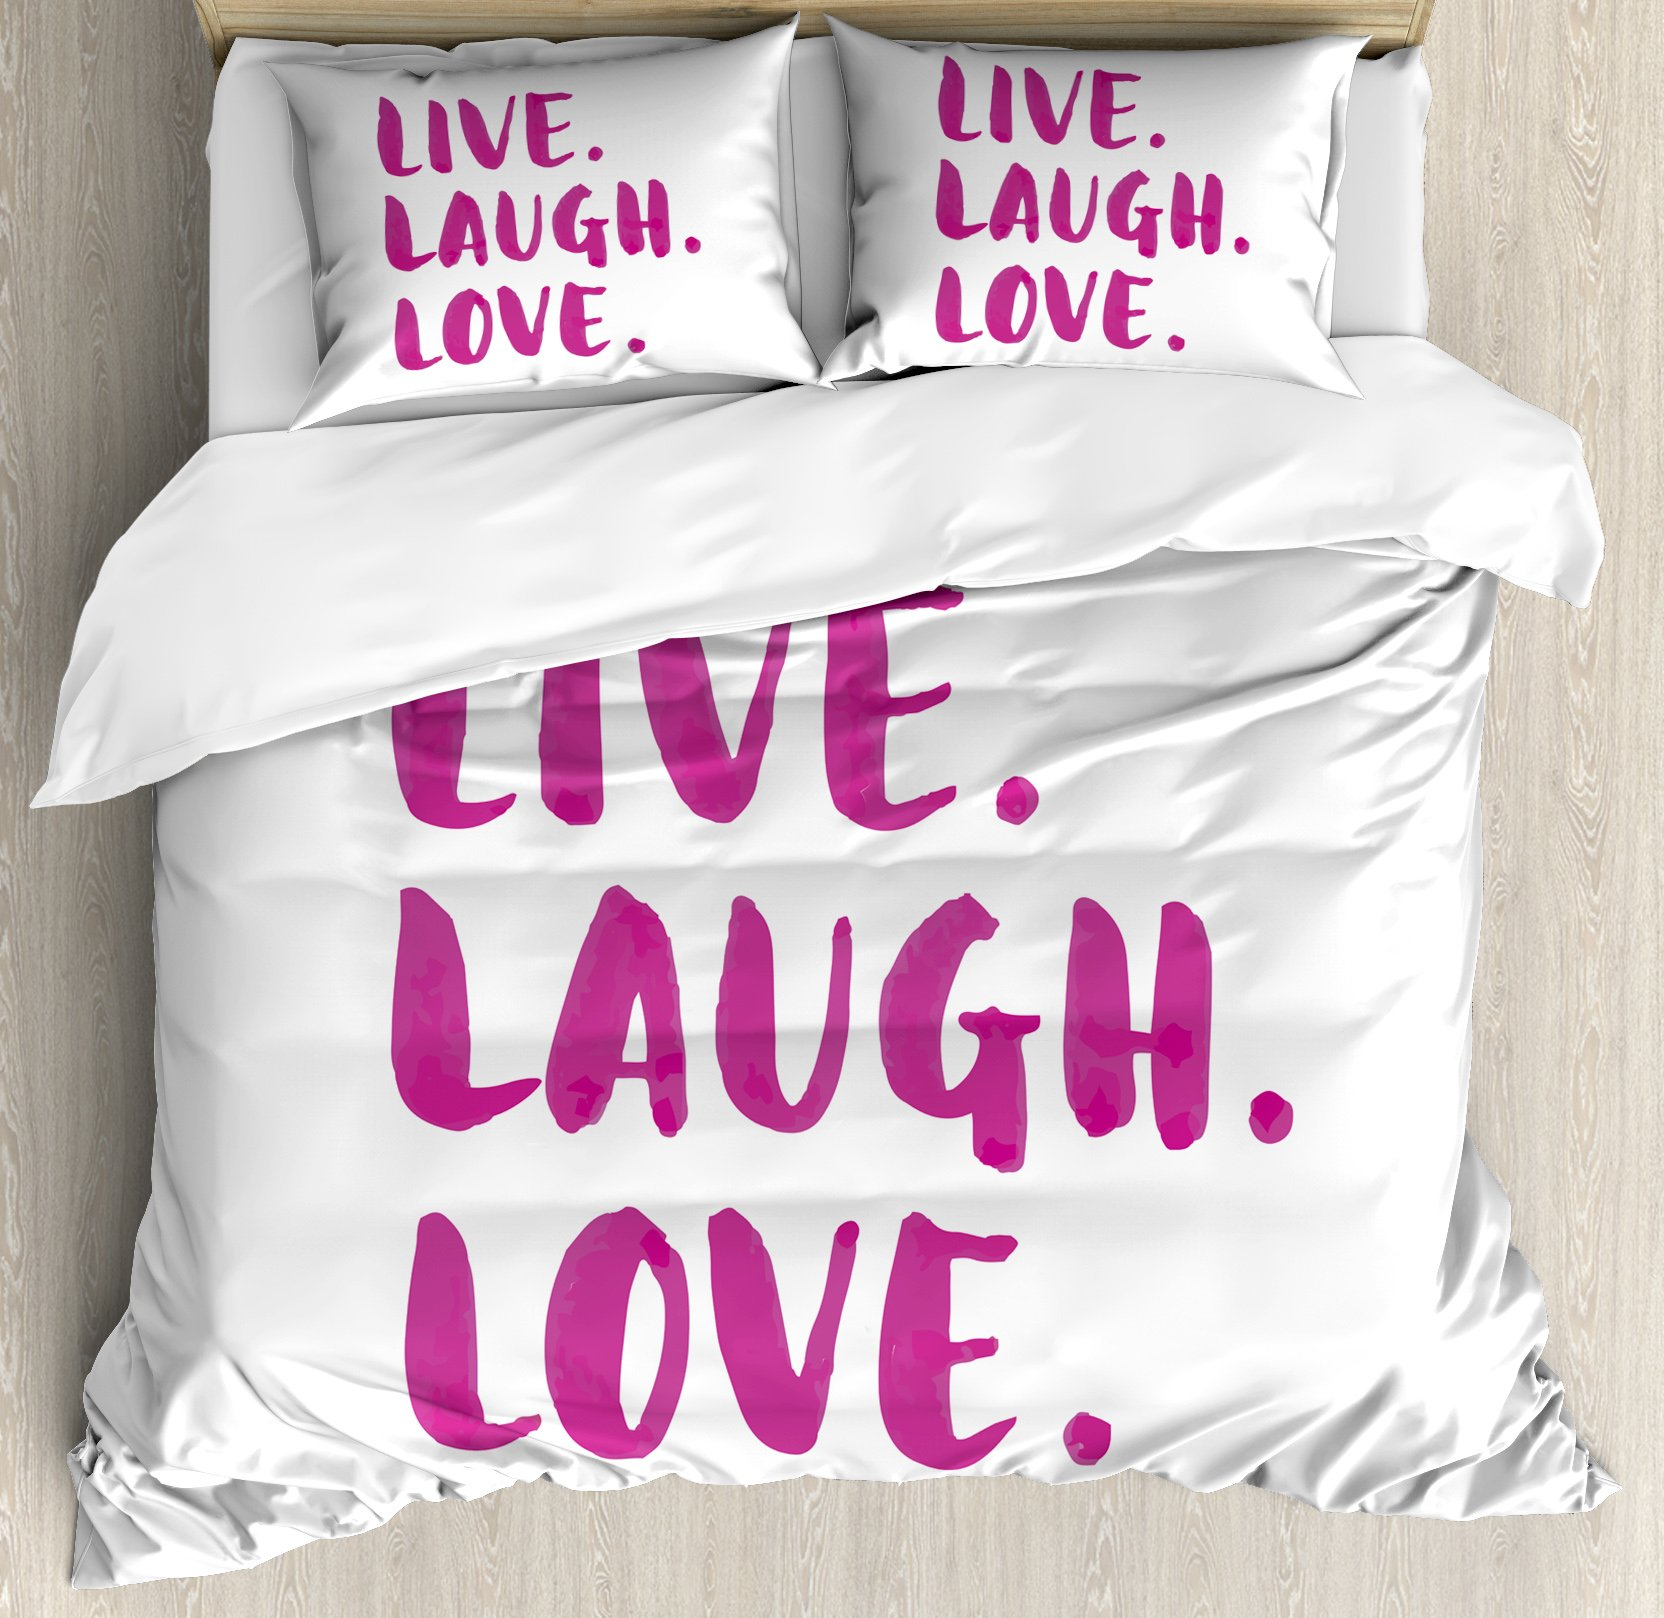 Live Laugh Love Duvet Cover Set Queen Size by Ambesonne, Positive Live Laugh Love Quote with Brush Stroke Effect Hand Lettering, Decorative 3 Piece Bedding Set with 2 Pillow Shams, Purple White